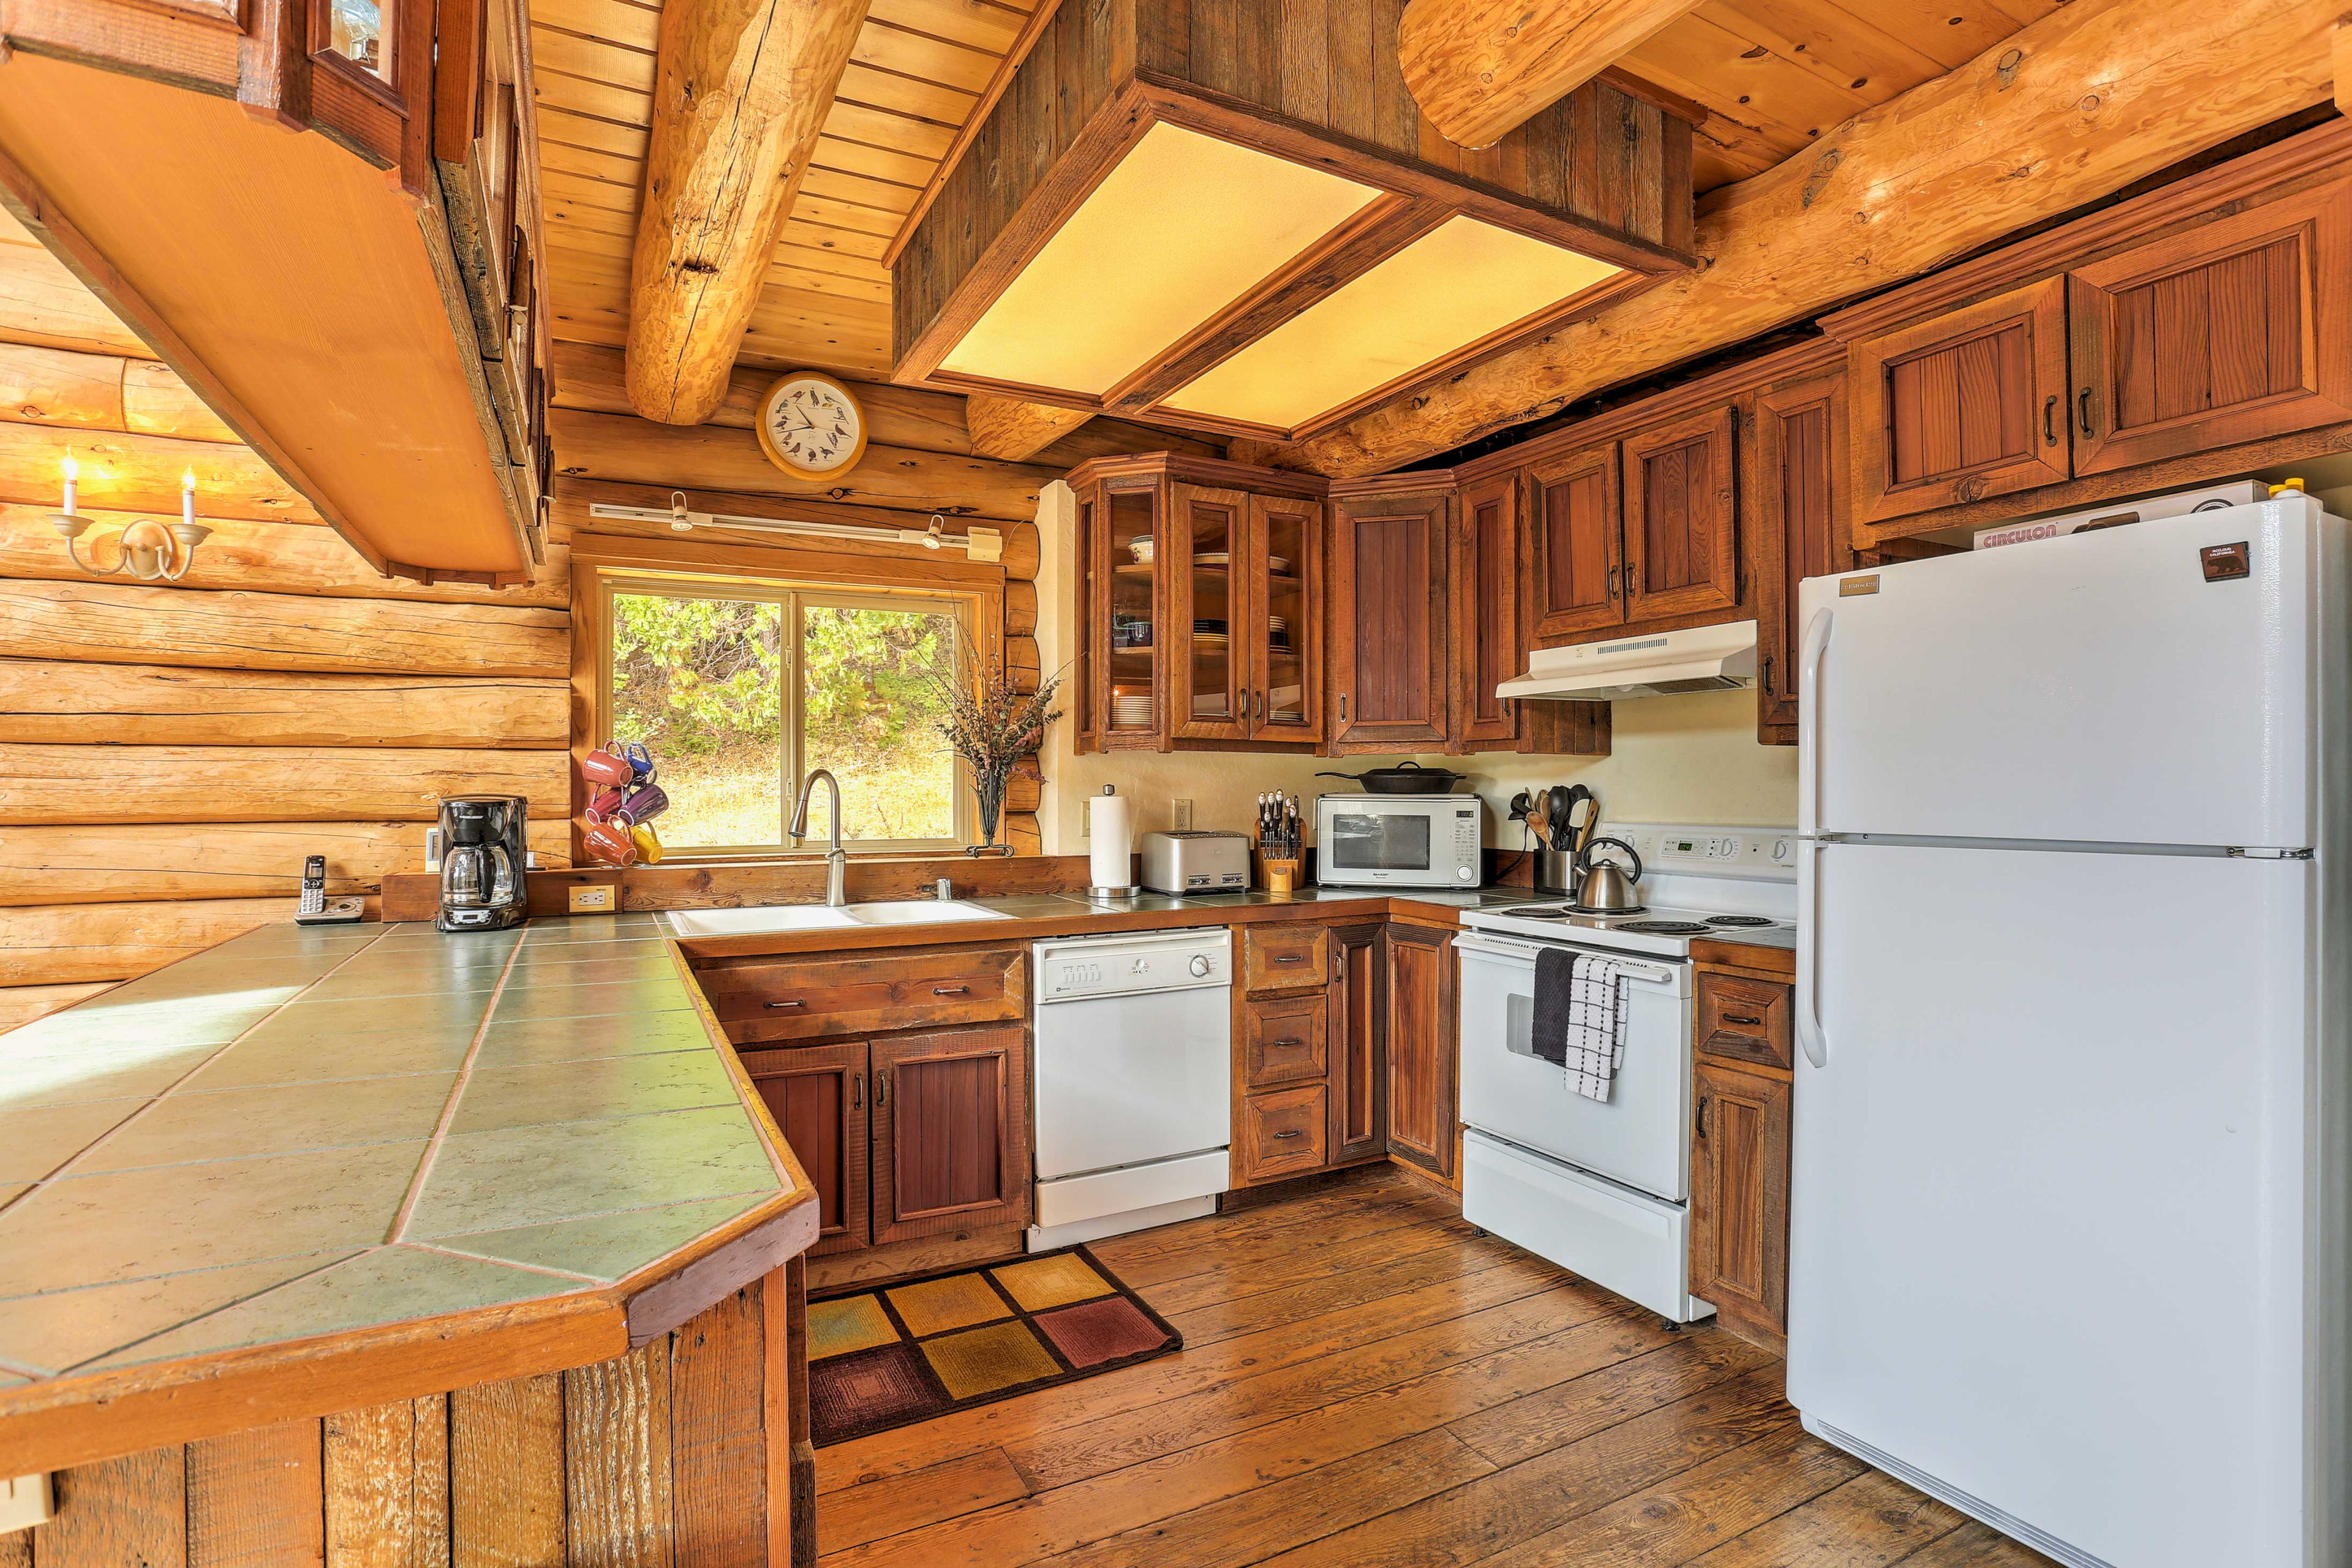 The fully equipped kitchen has everything you need to cook.